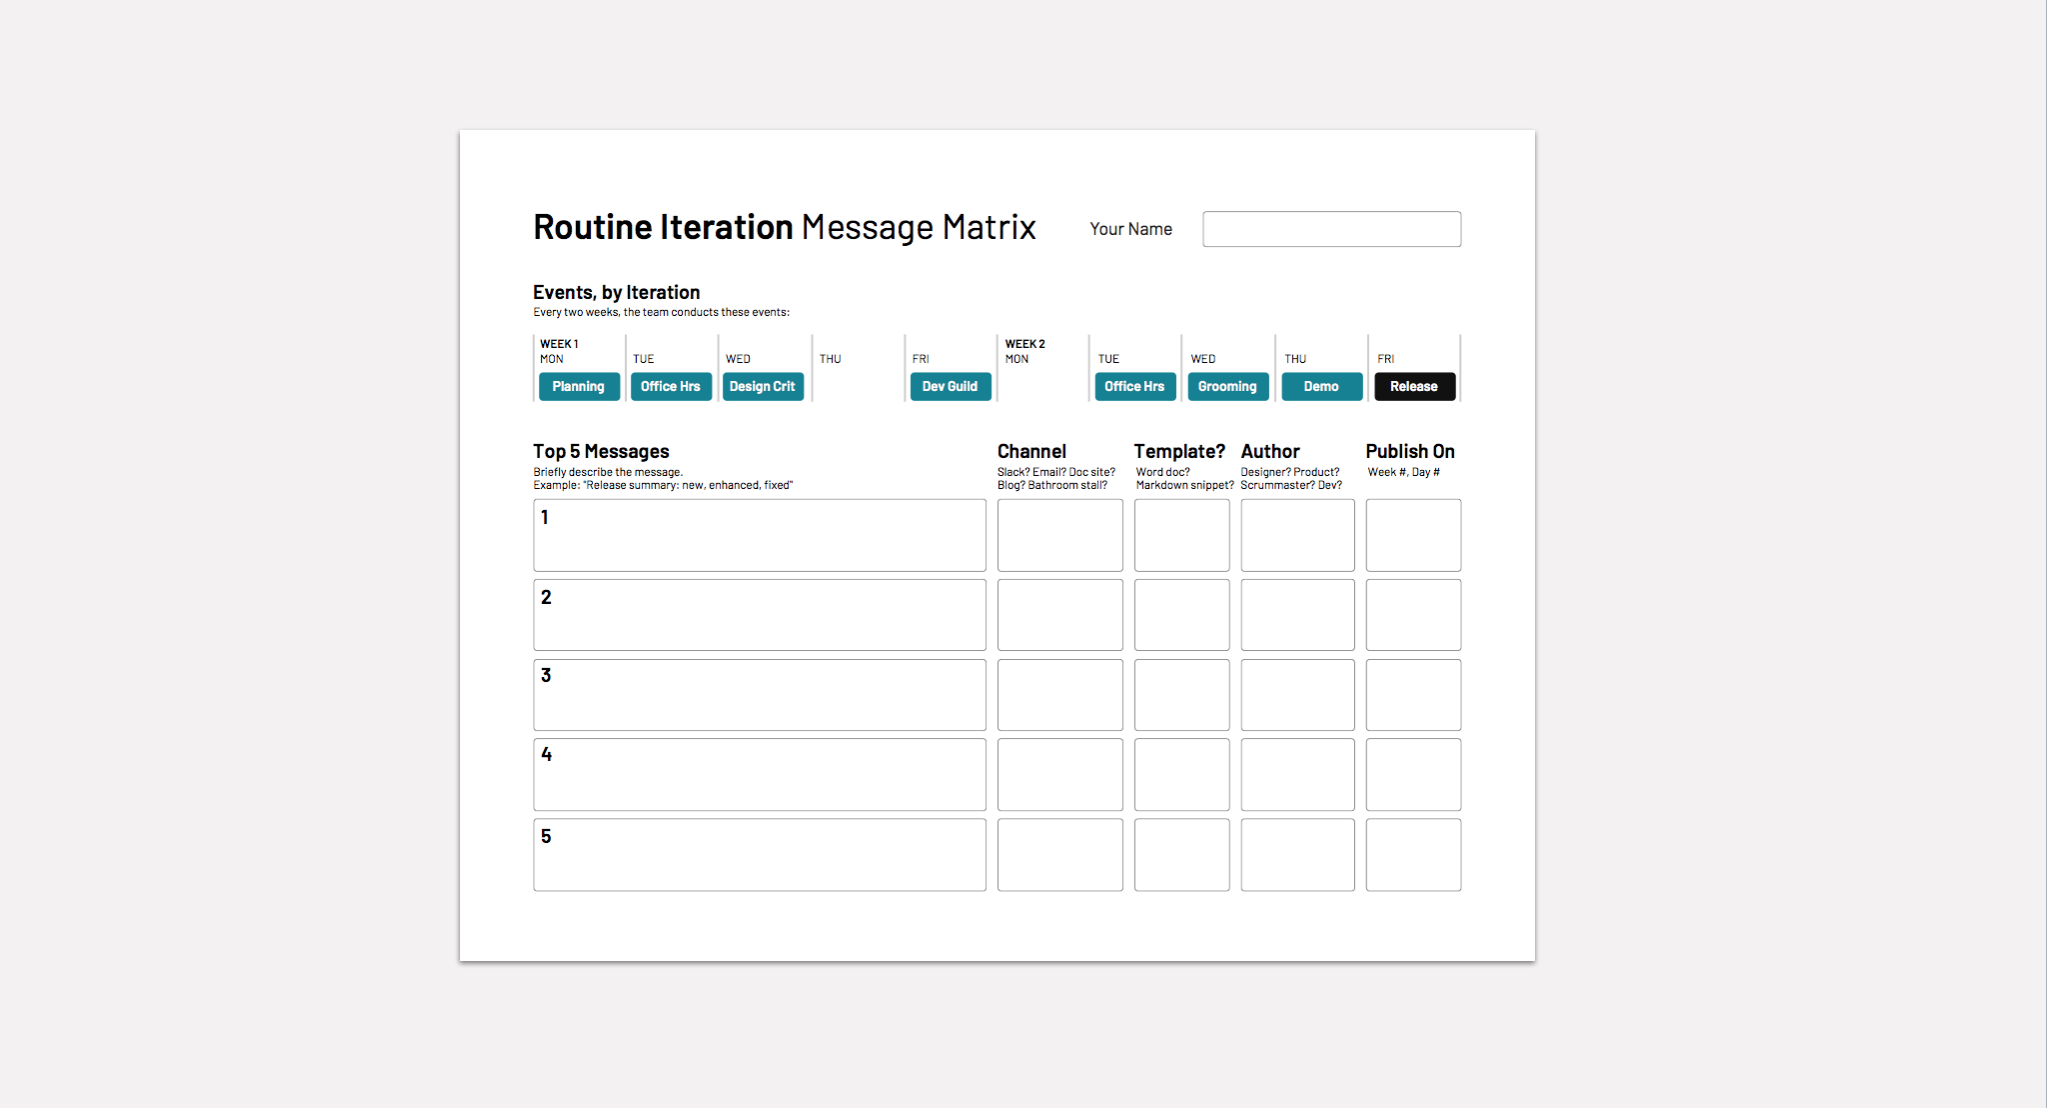 Paper template for message matrix of routine iteration